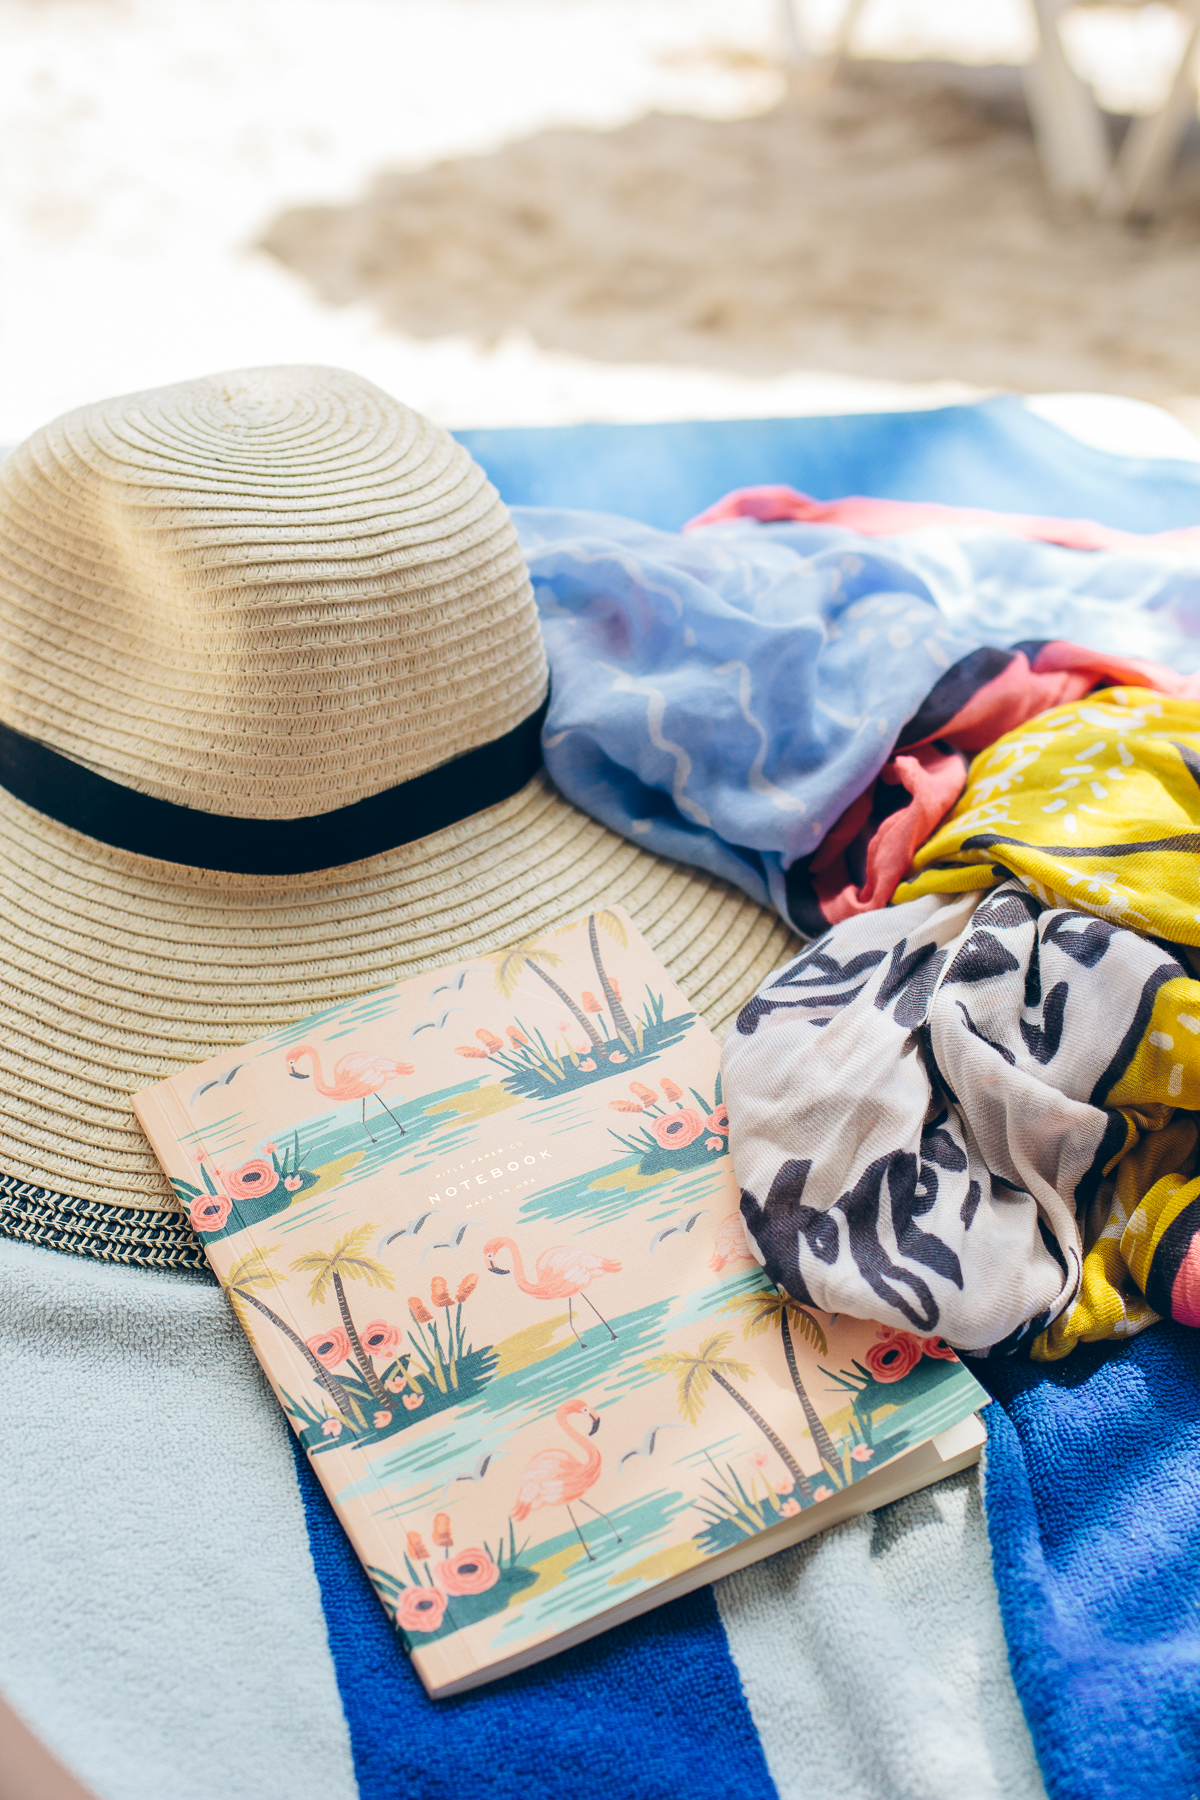 LOFT floppy hat, LOFT scarf, Rifle Paper Co journal — via @TheFoxandShe